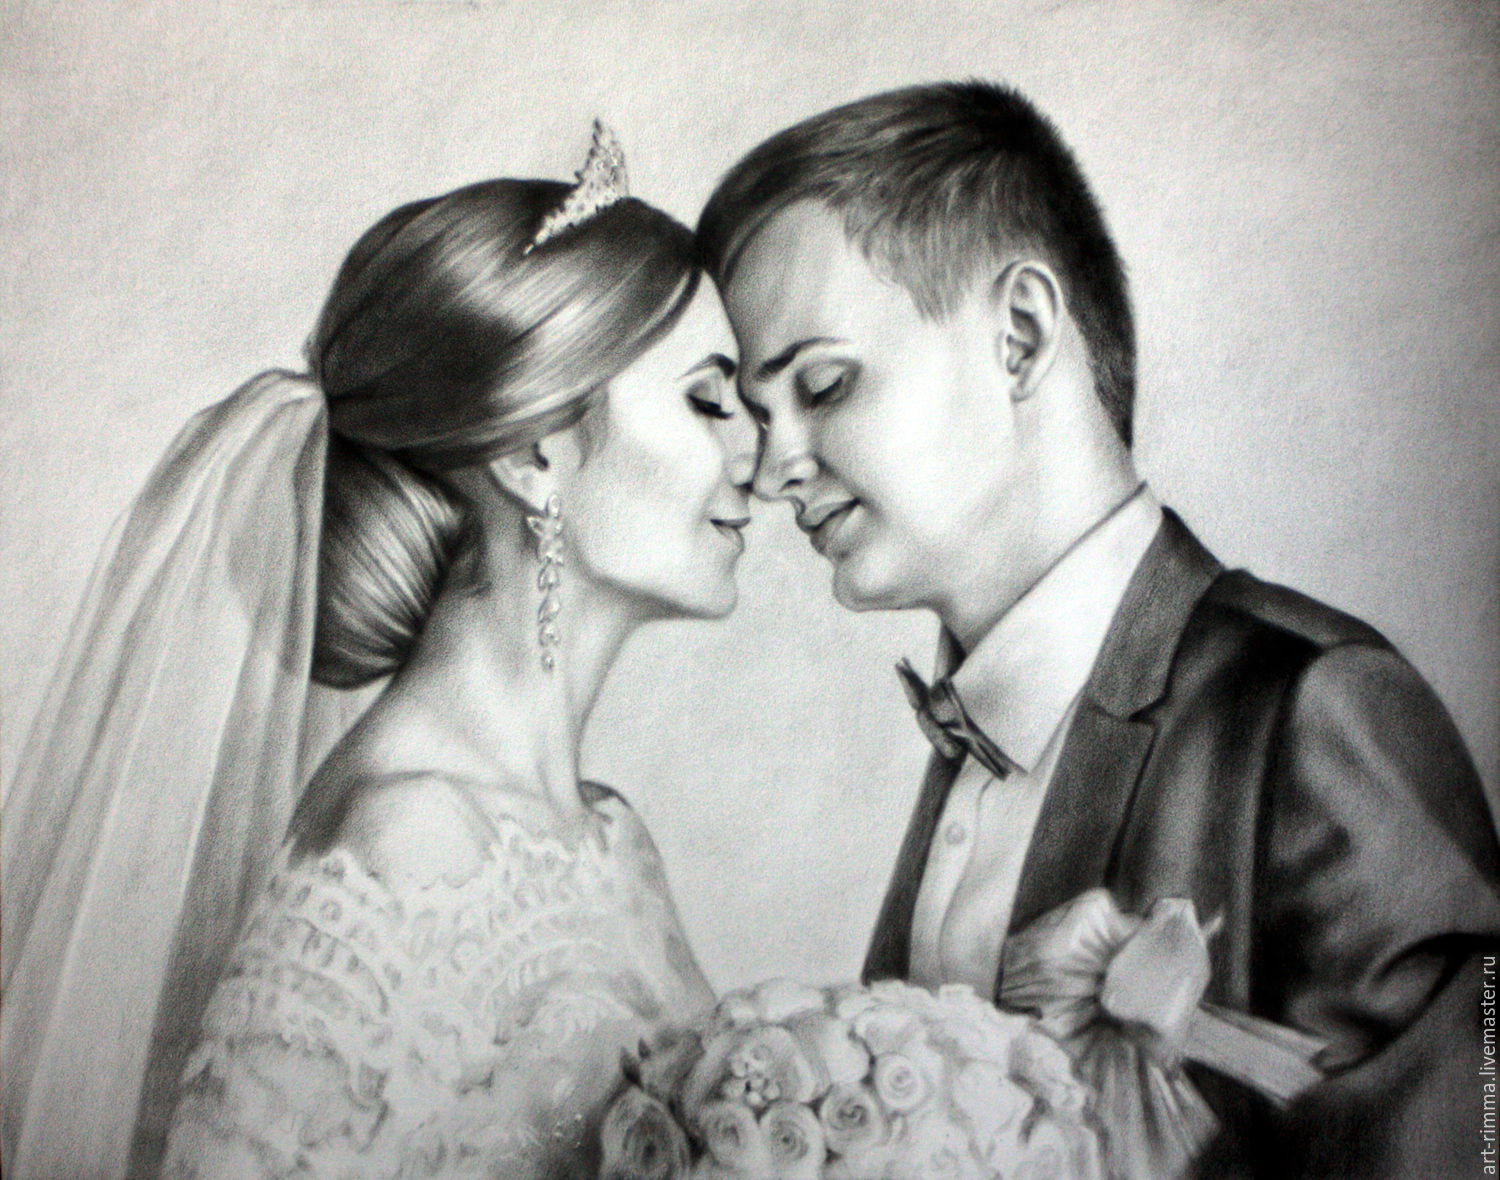 Wedding portrait, Pictures, Moscow,  Фото №1